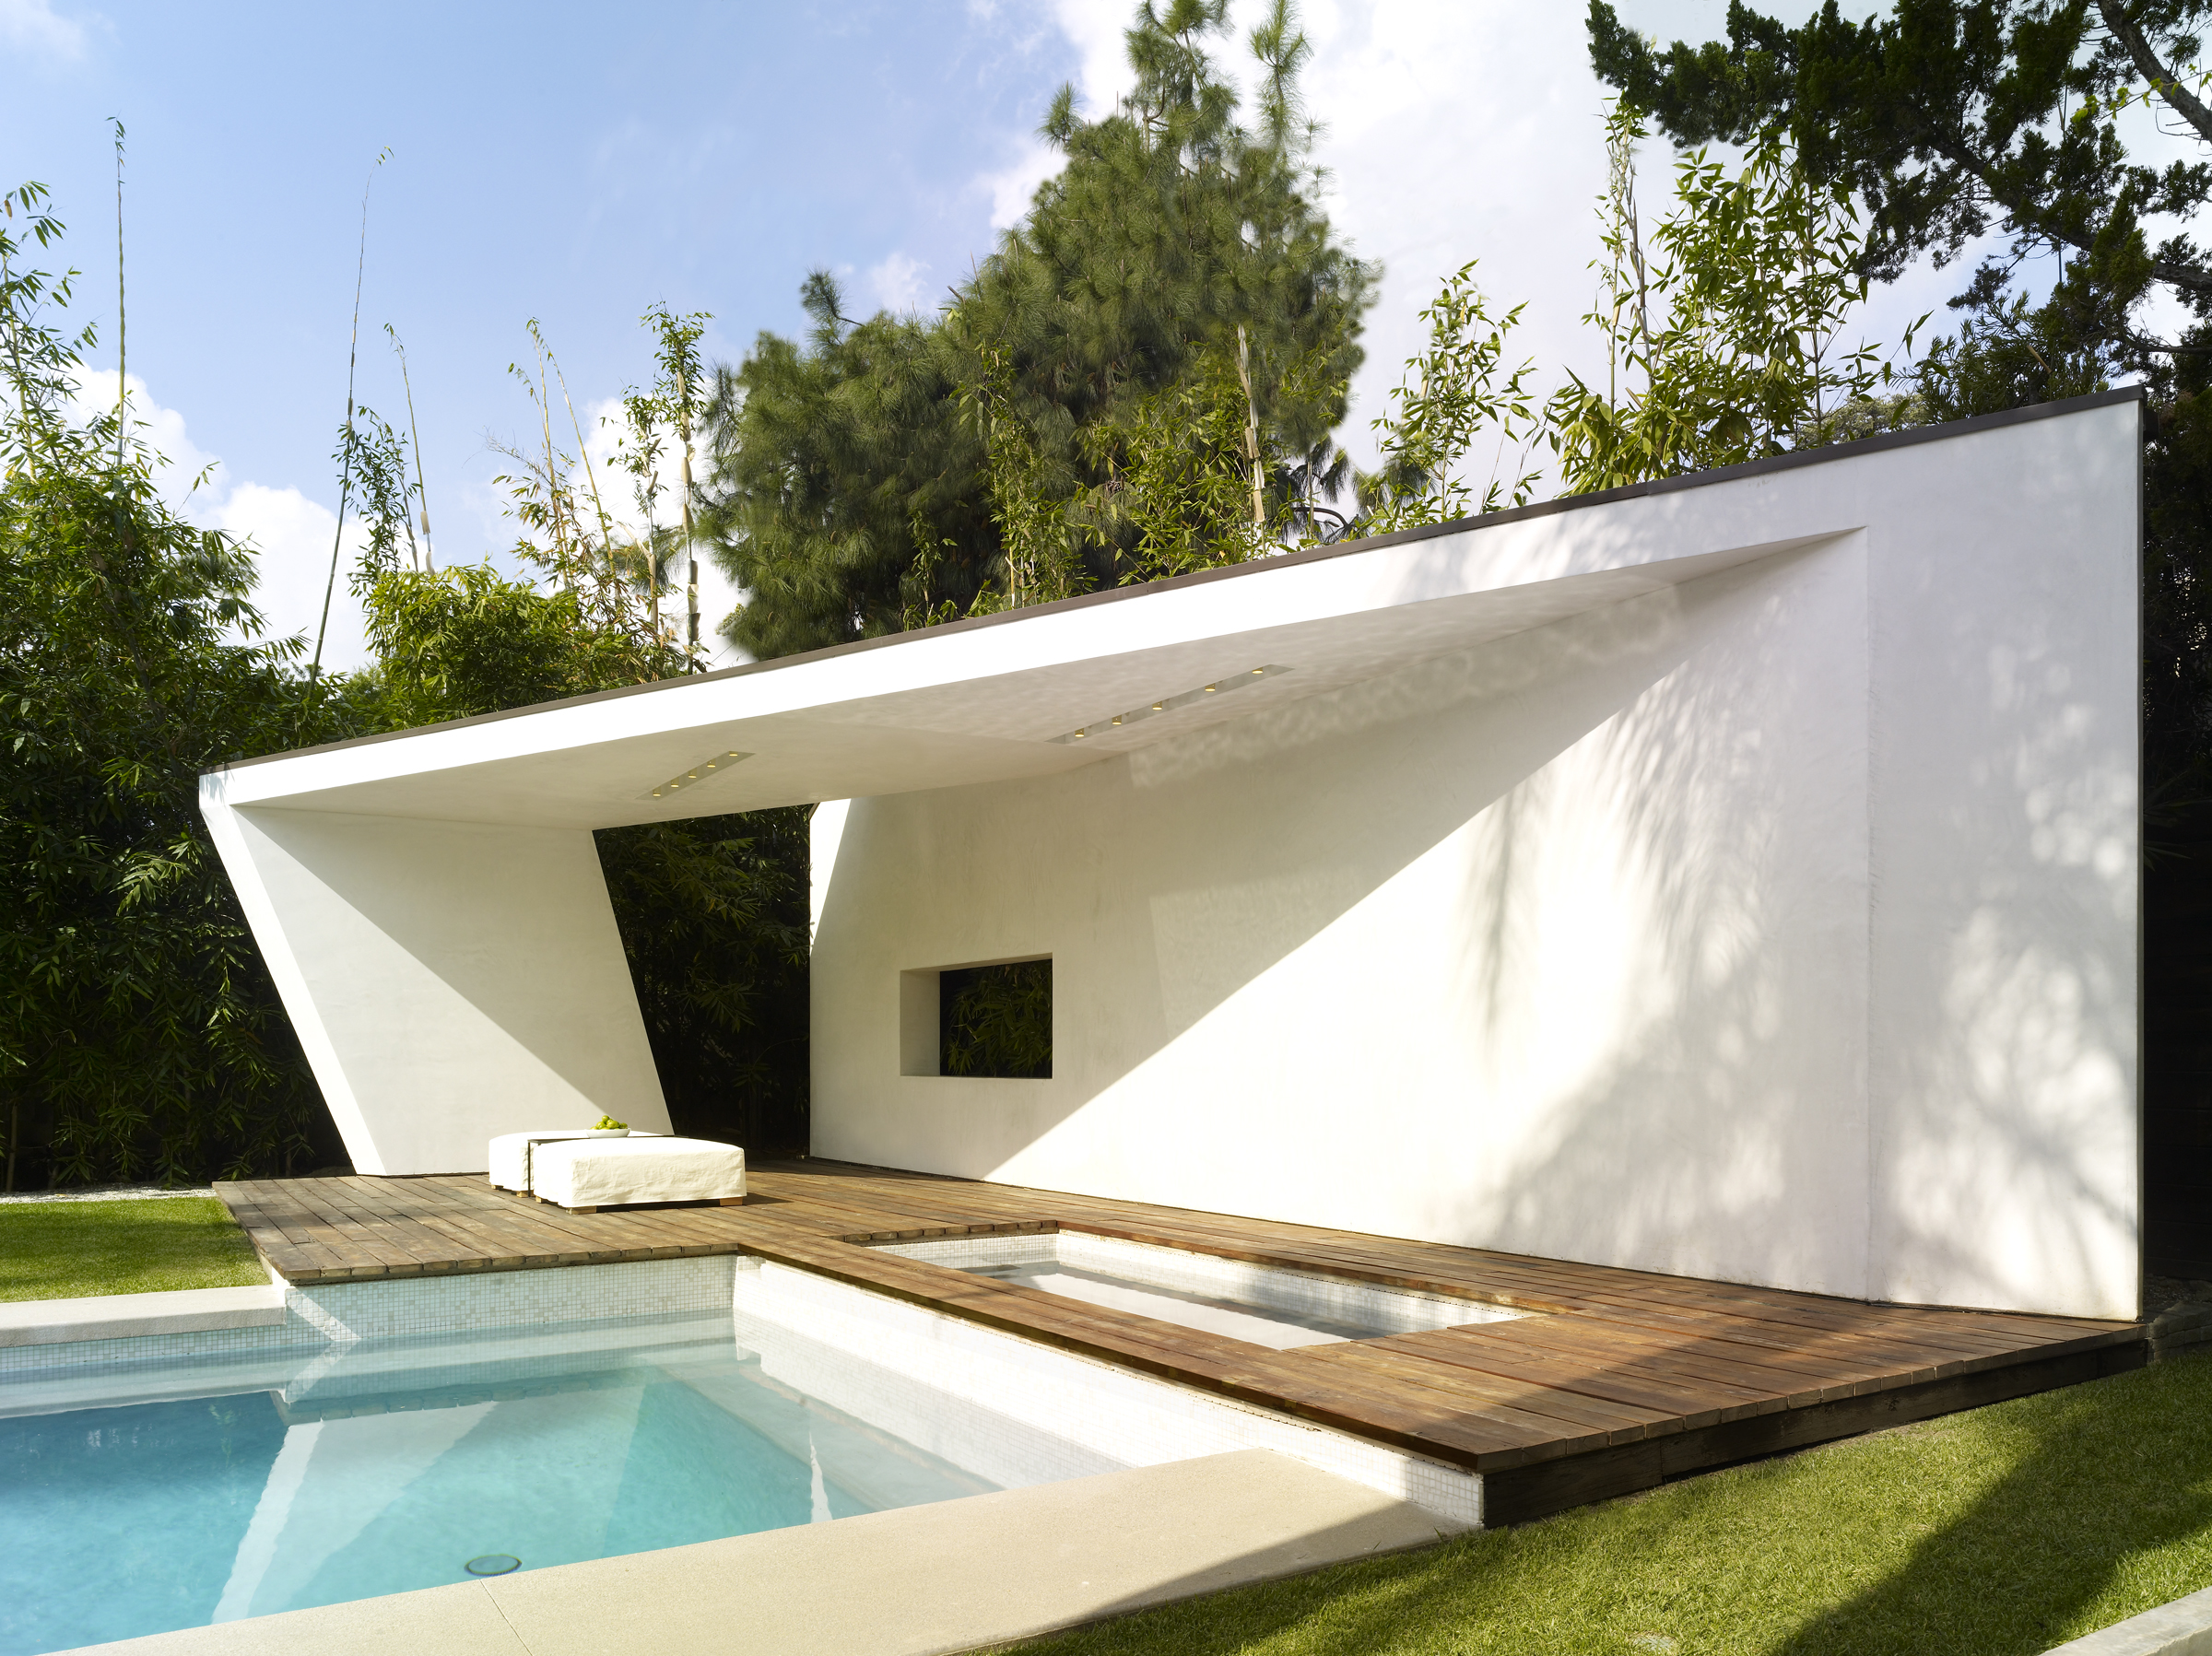 01 Shade structure pool spa.jpg